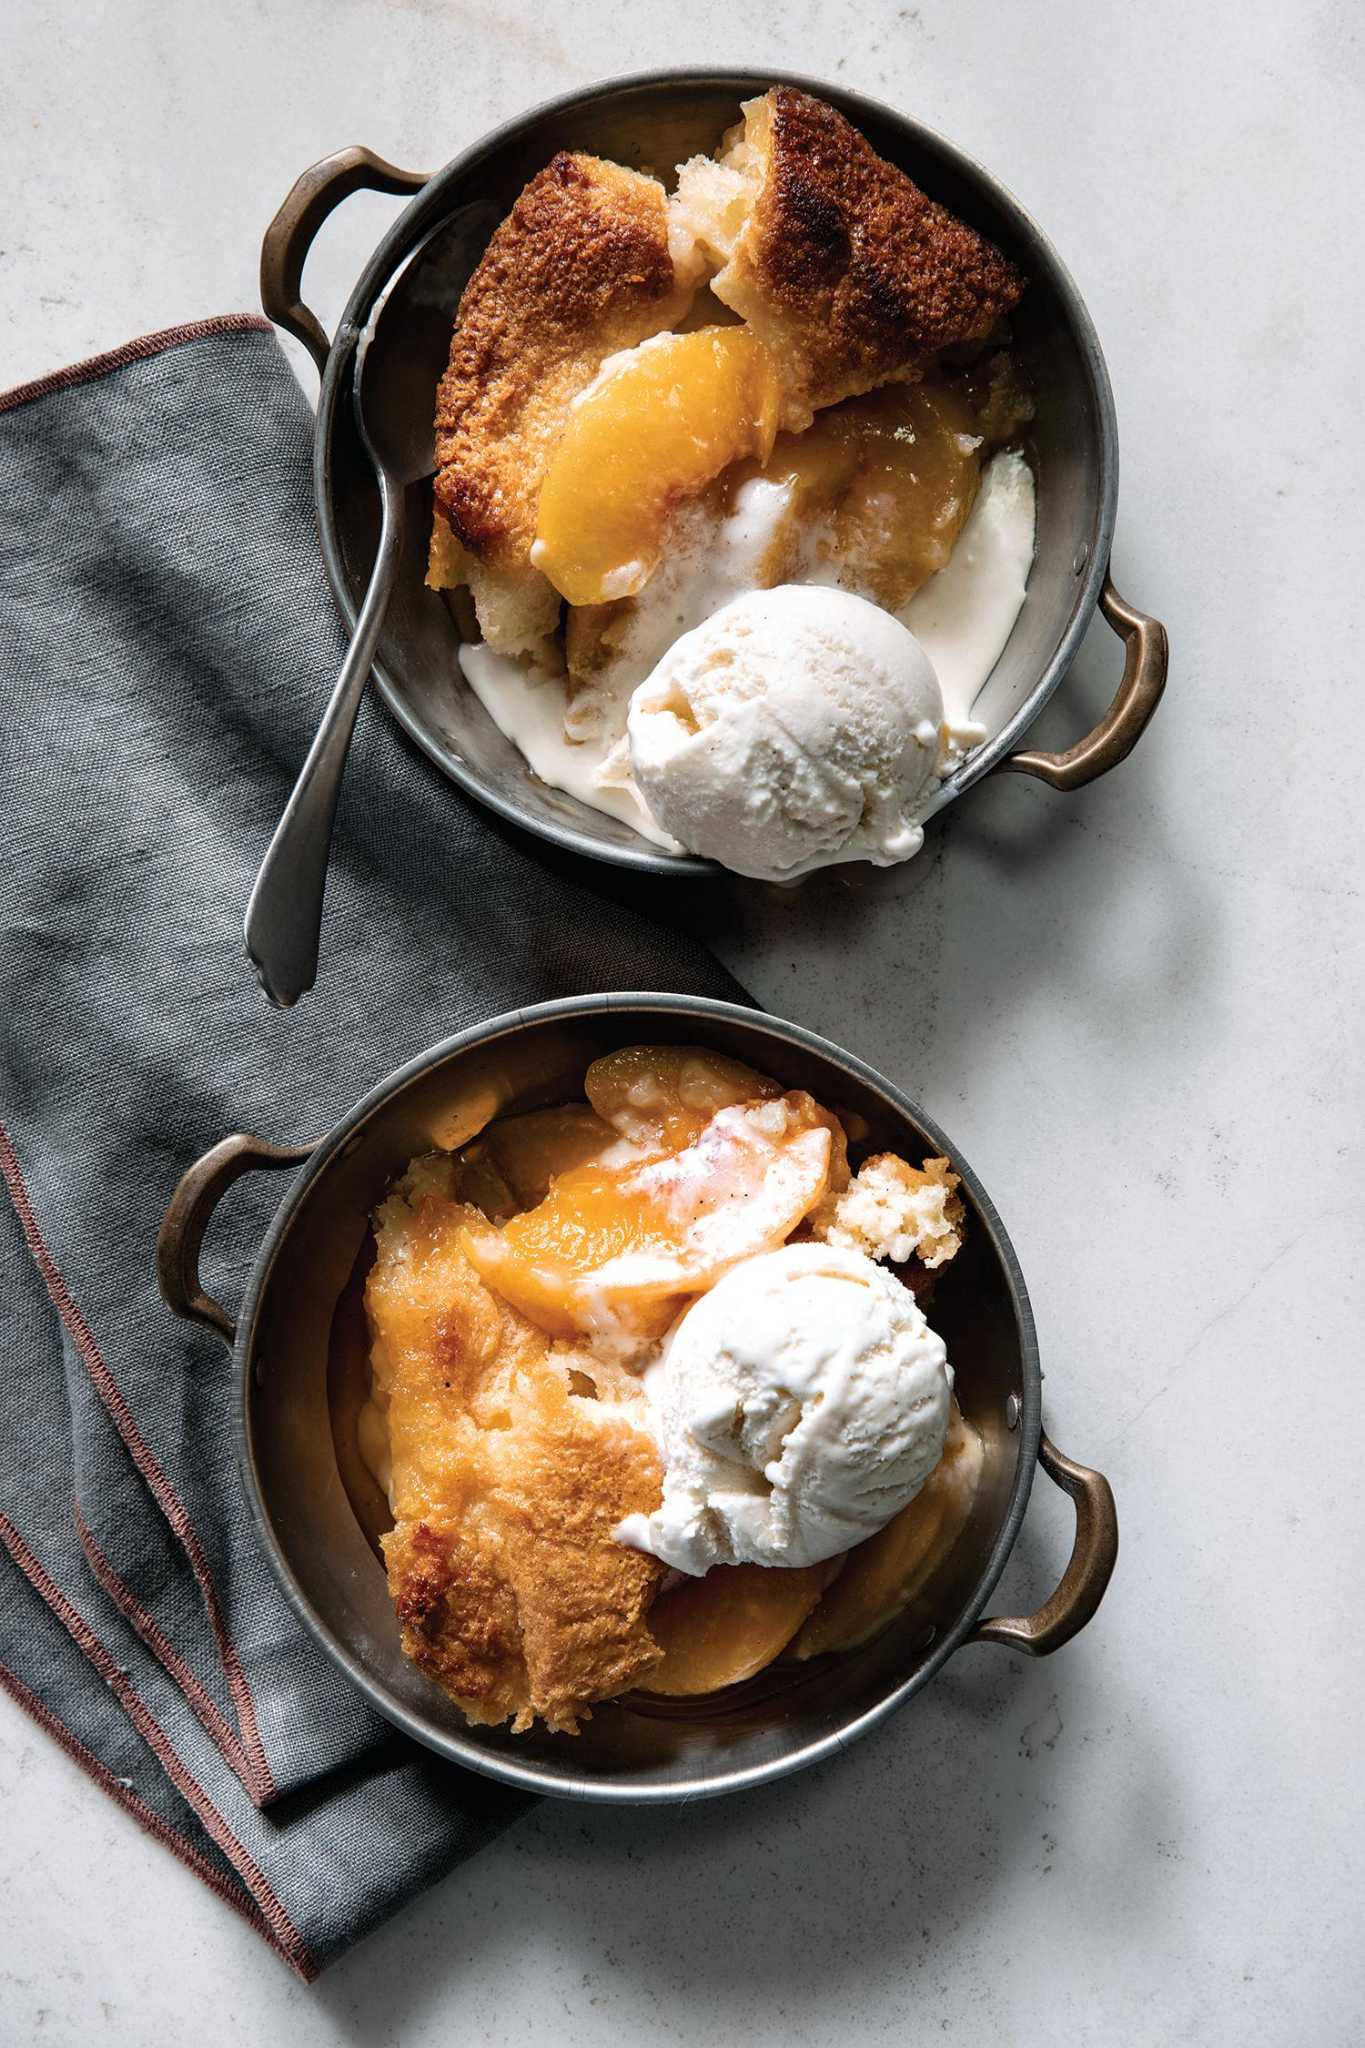 Recipe: Joanna Gaines' Peach Cobbler - HoustonChronicle.com